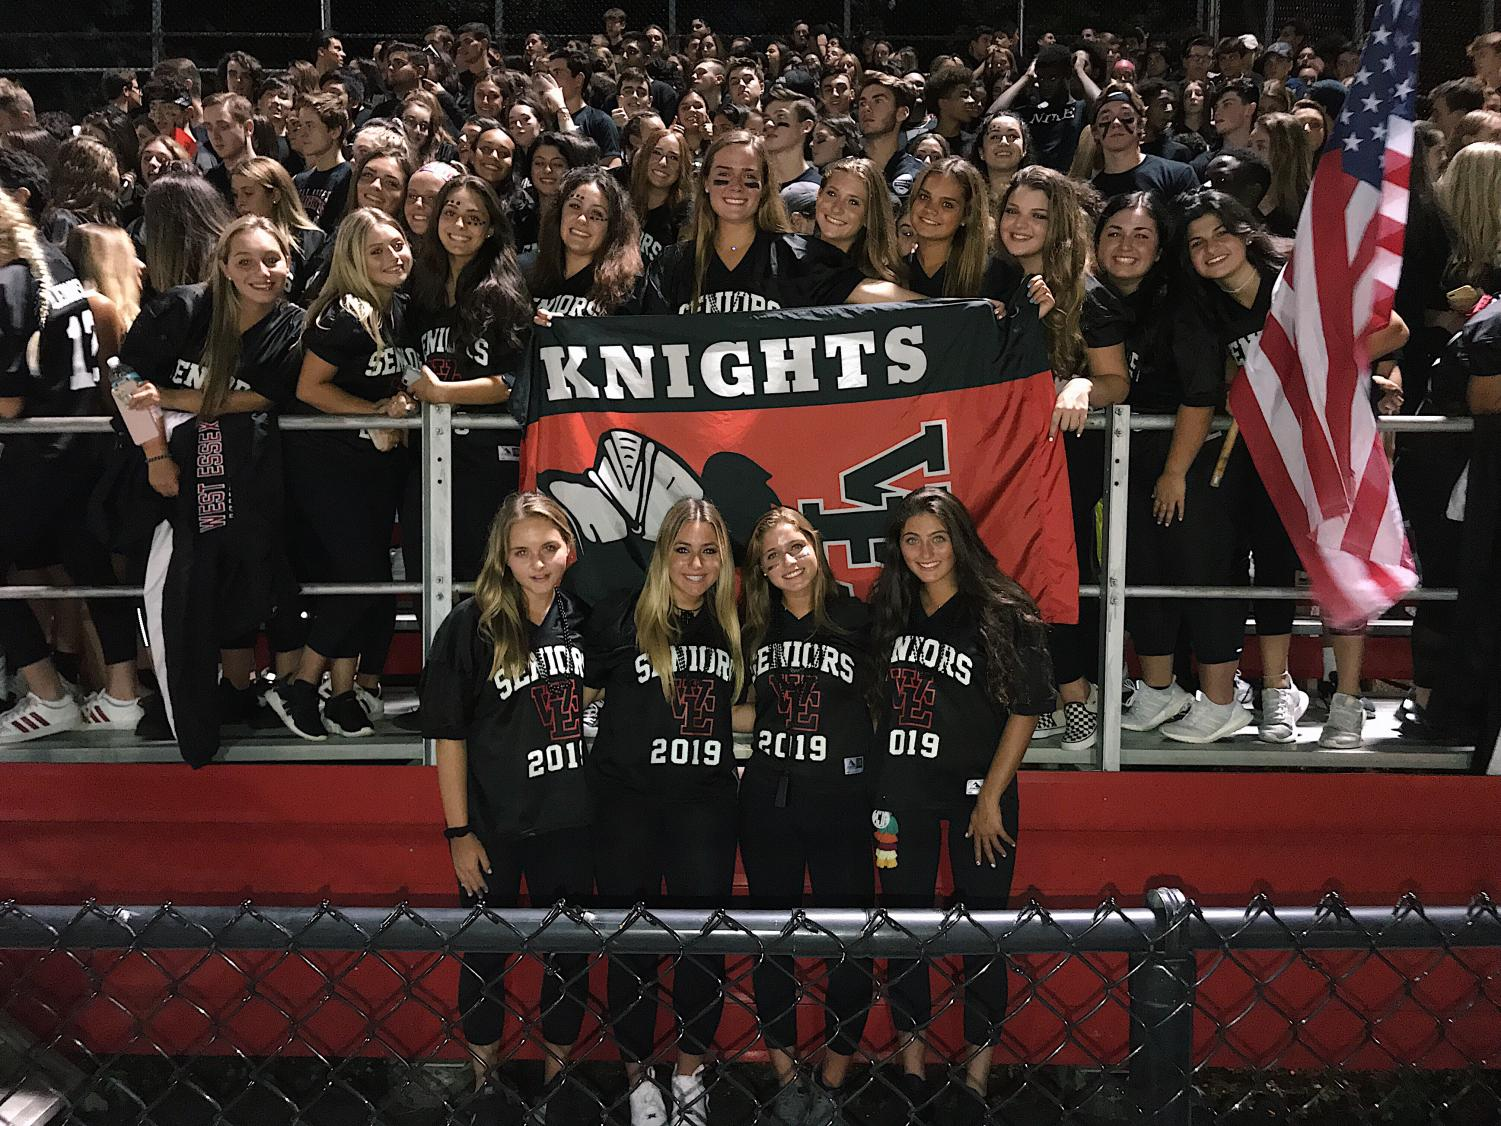 Students lead the fan section, flag in hand.